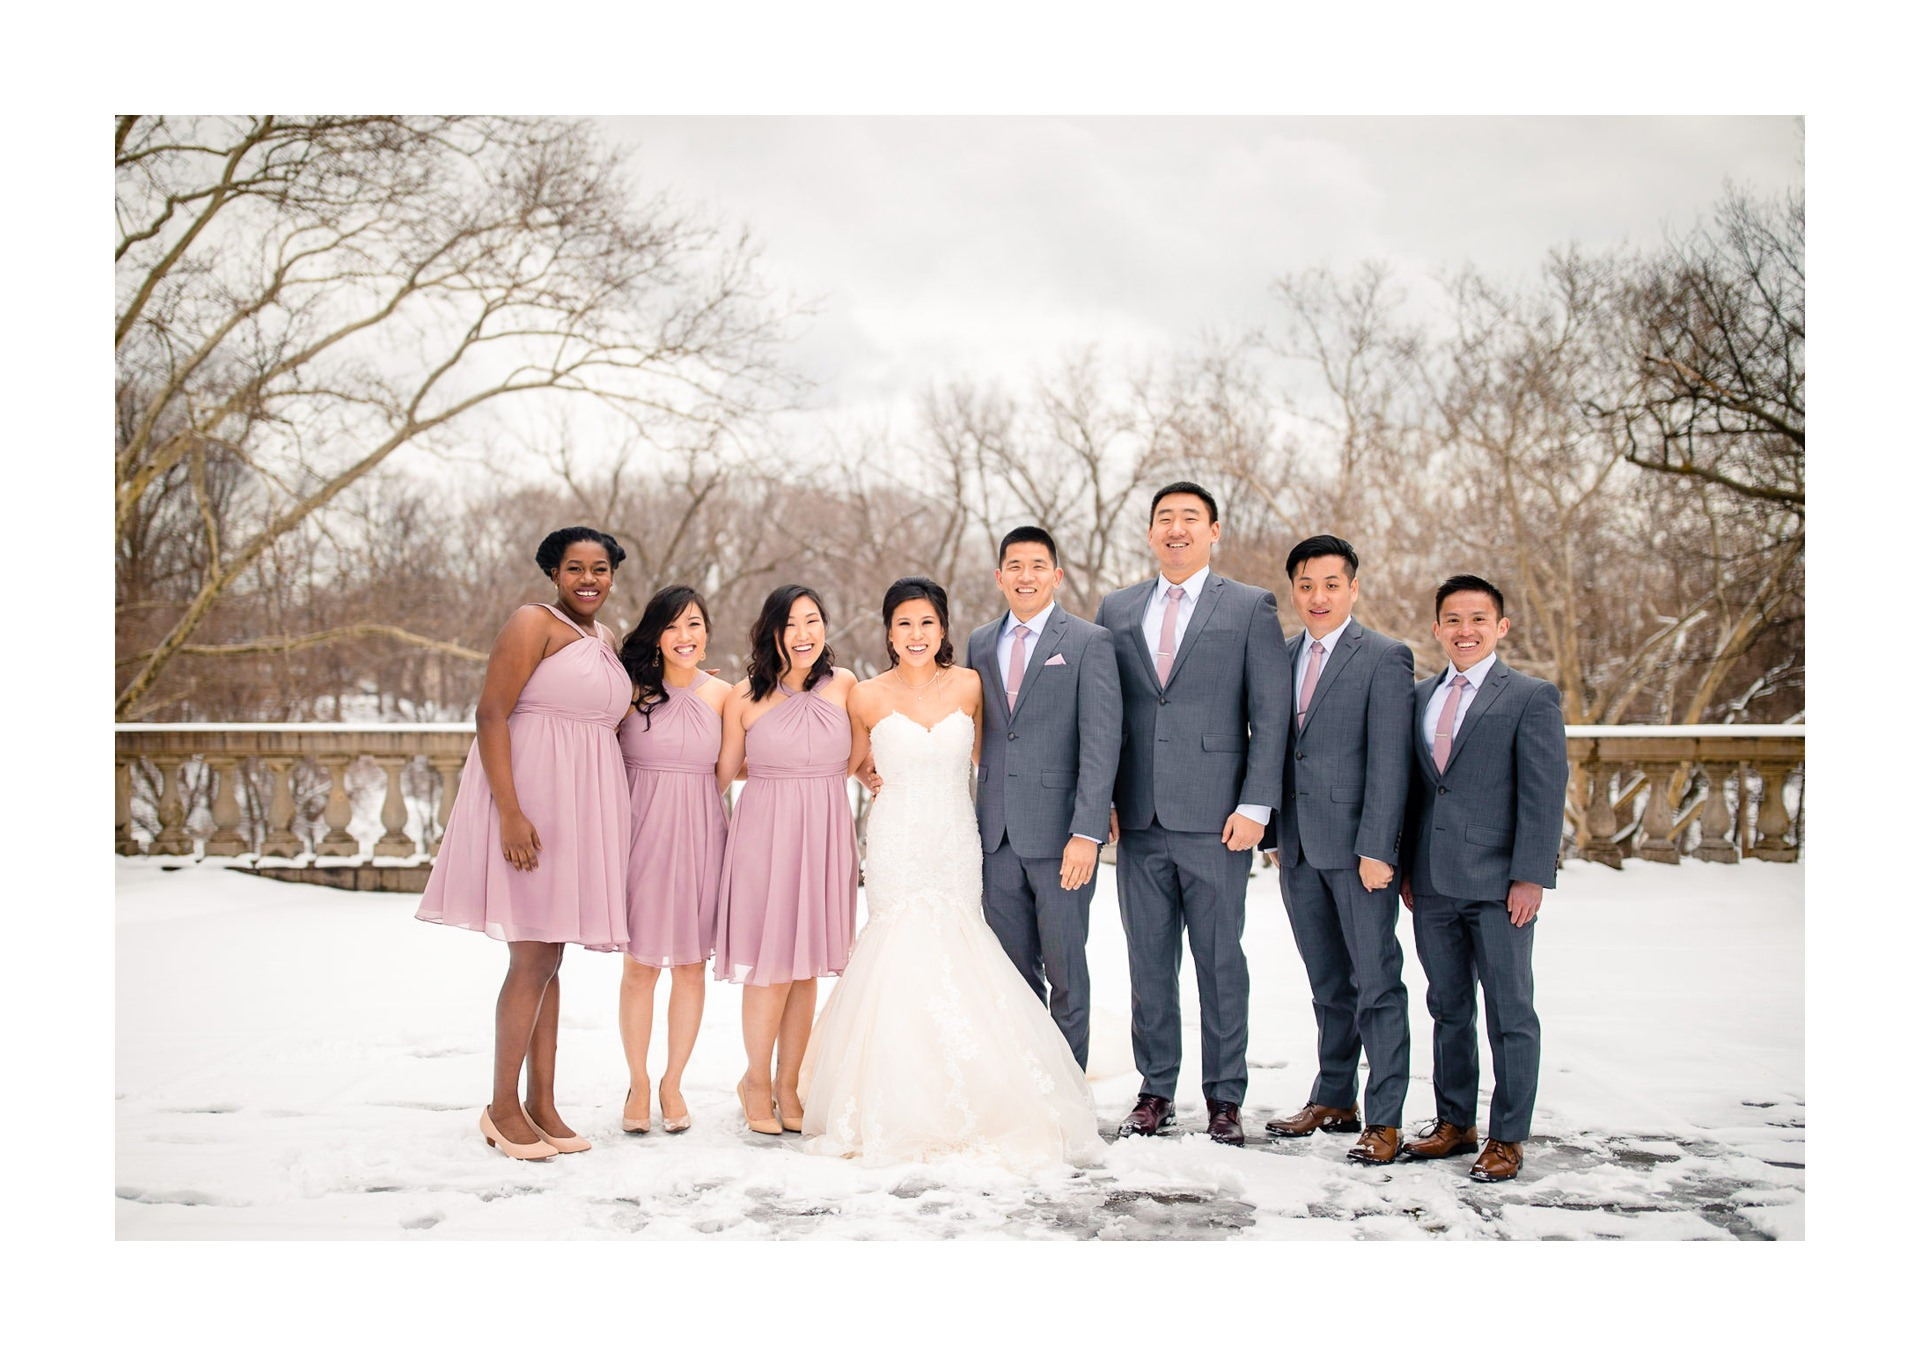 Windows on the River Winter Wedding Photographer in Cleveland 39.jpg